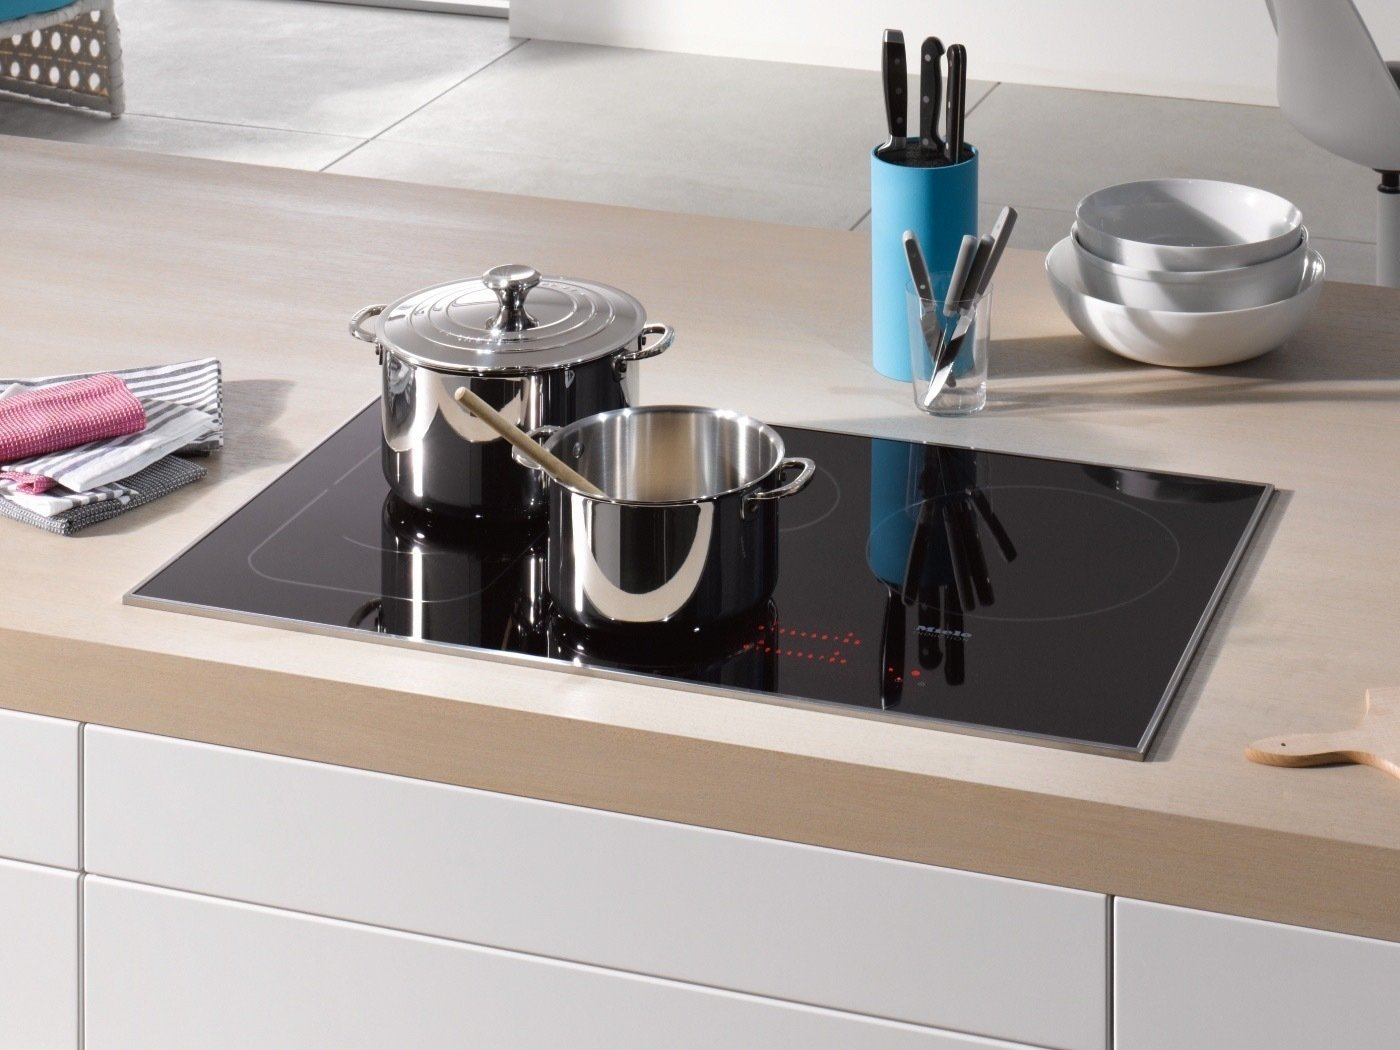 If all that isn't enough, the extra capabilities will blow you away. Most notably, you'll be happy to find an automatic heat-up option, a precise timer, variable cooking zones, safety shut-off functions, intuitive control panels, pan size recognition, and an EasyClean Ceran surface that's designed to resist heat transfer.  Photo 4 of 4 in The Possibilities Are Endless With This New Cutting-Edge Cooktop